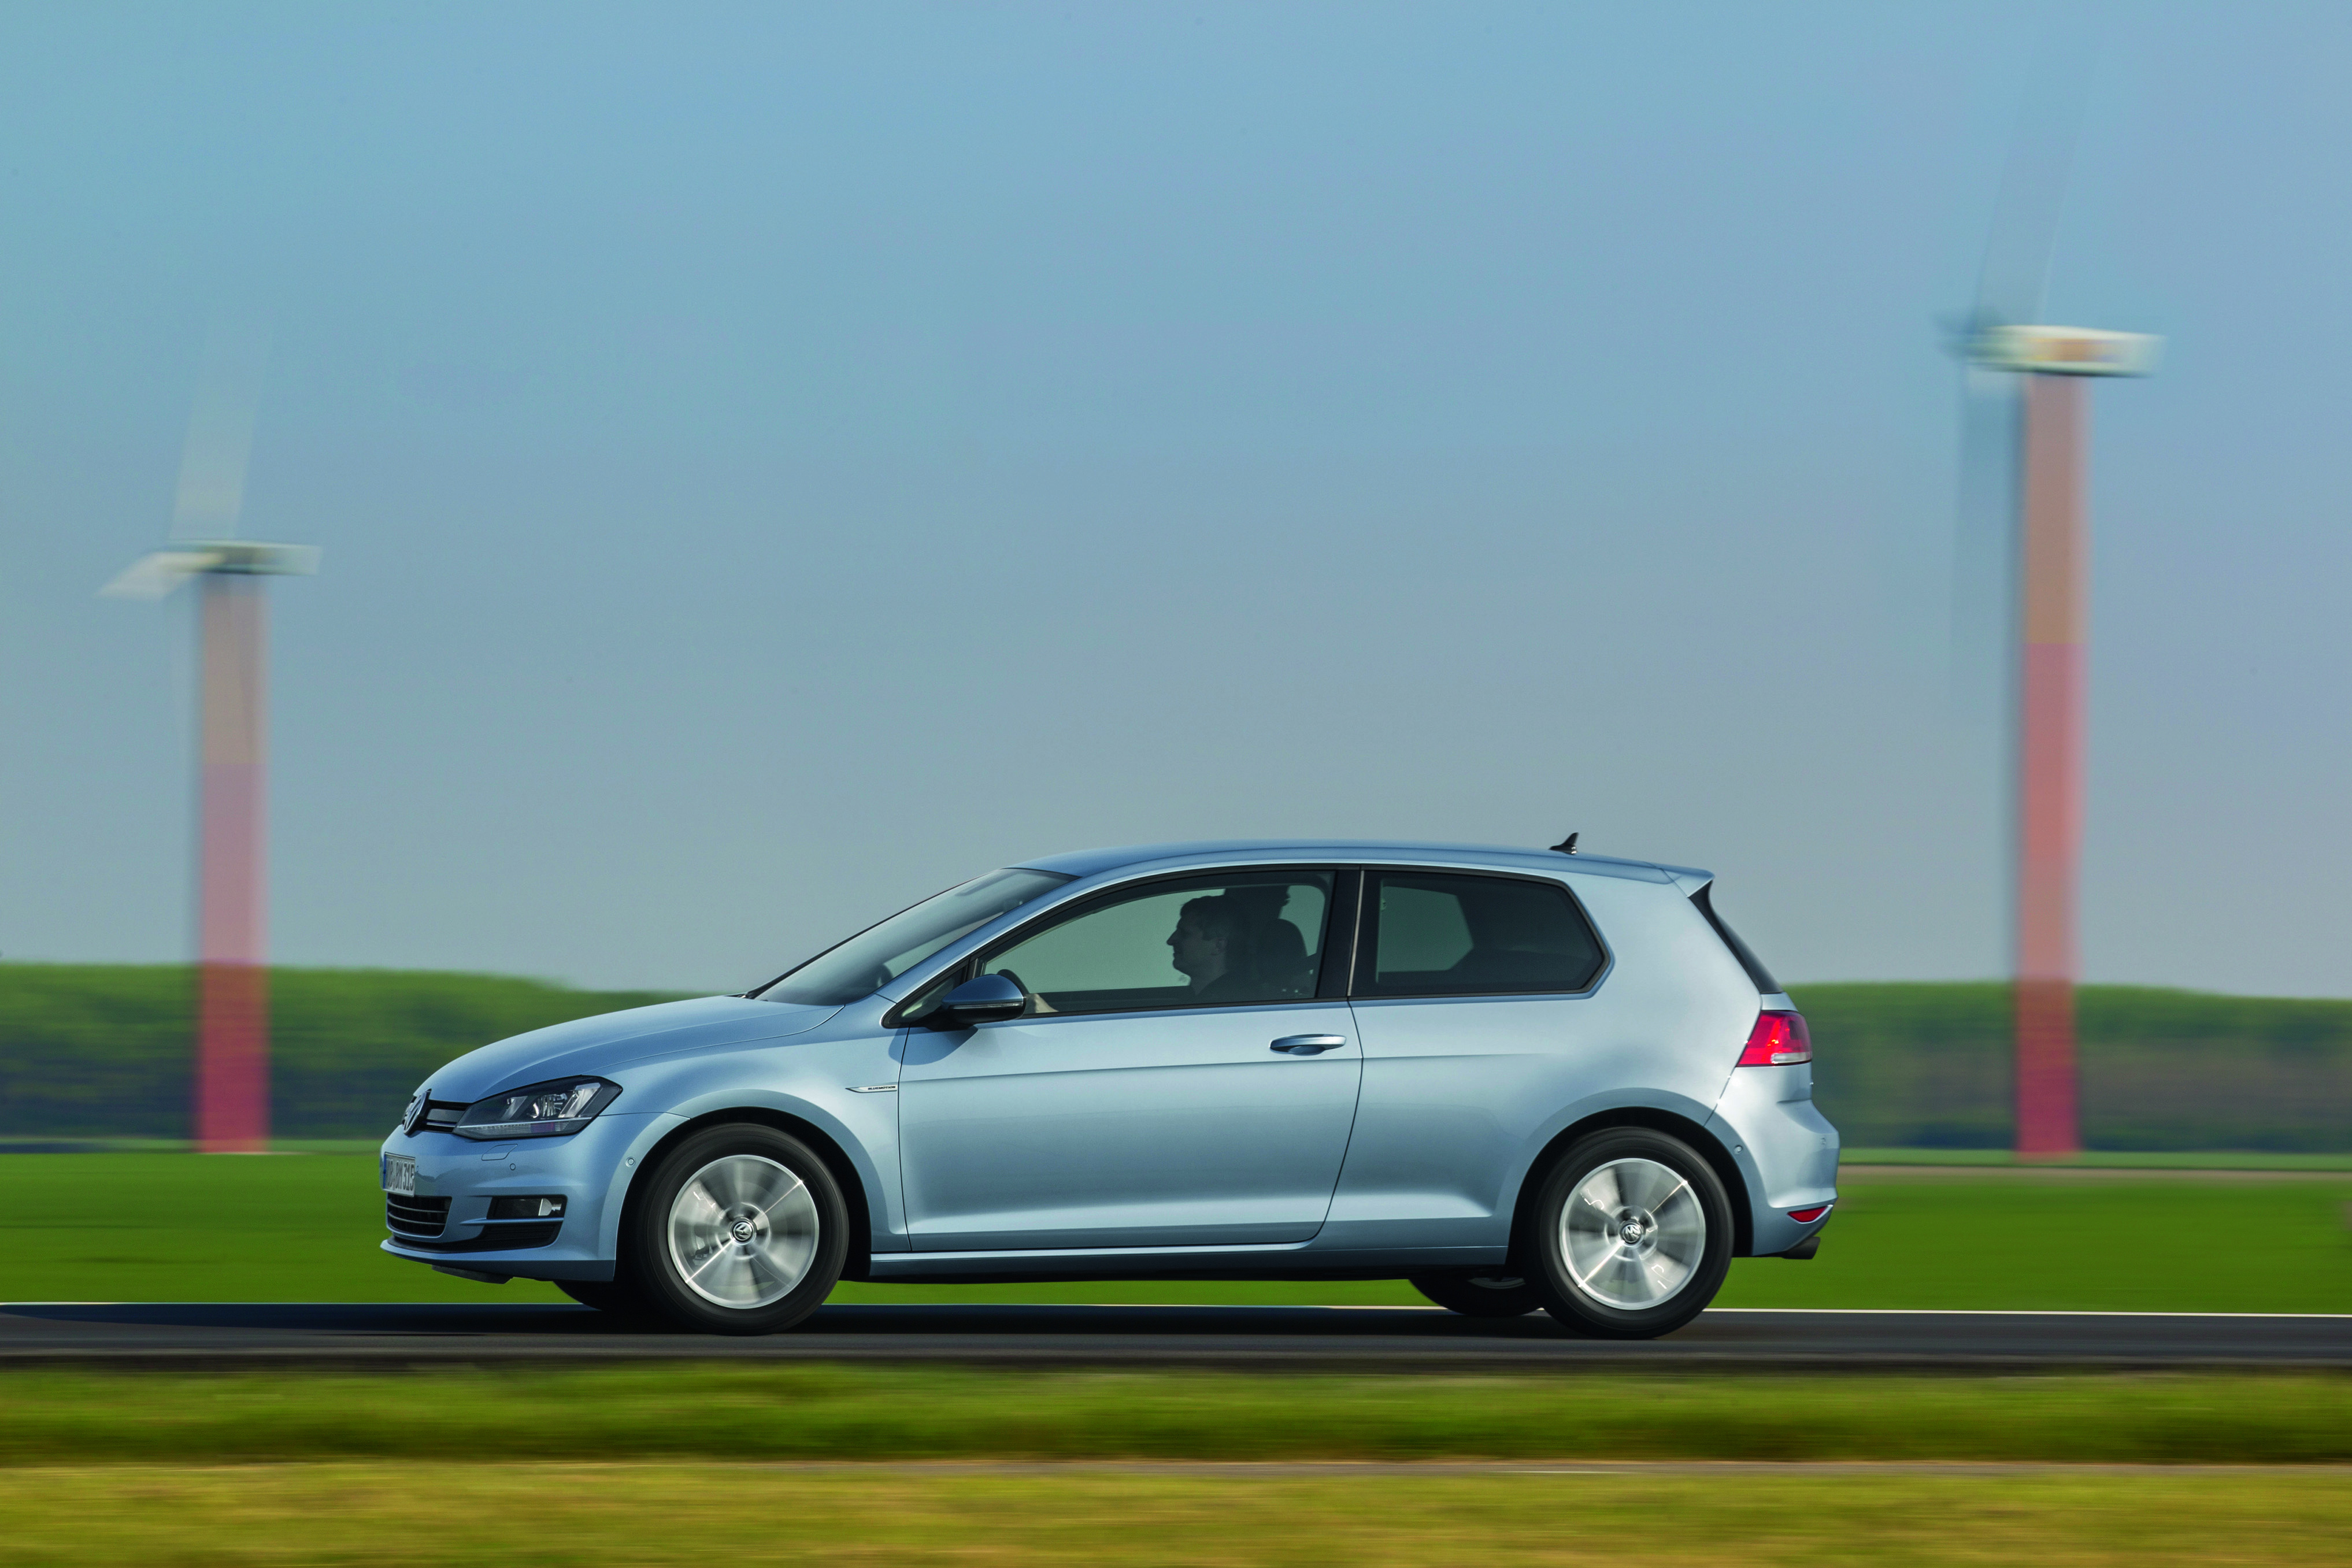 essai volkswagen golf 1 6 tdi 110 bluemotion le chameau de la famille. Black Bedroom Furniture Sets. Home Design Ideas